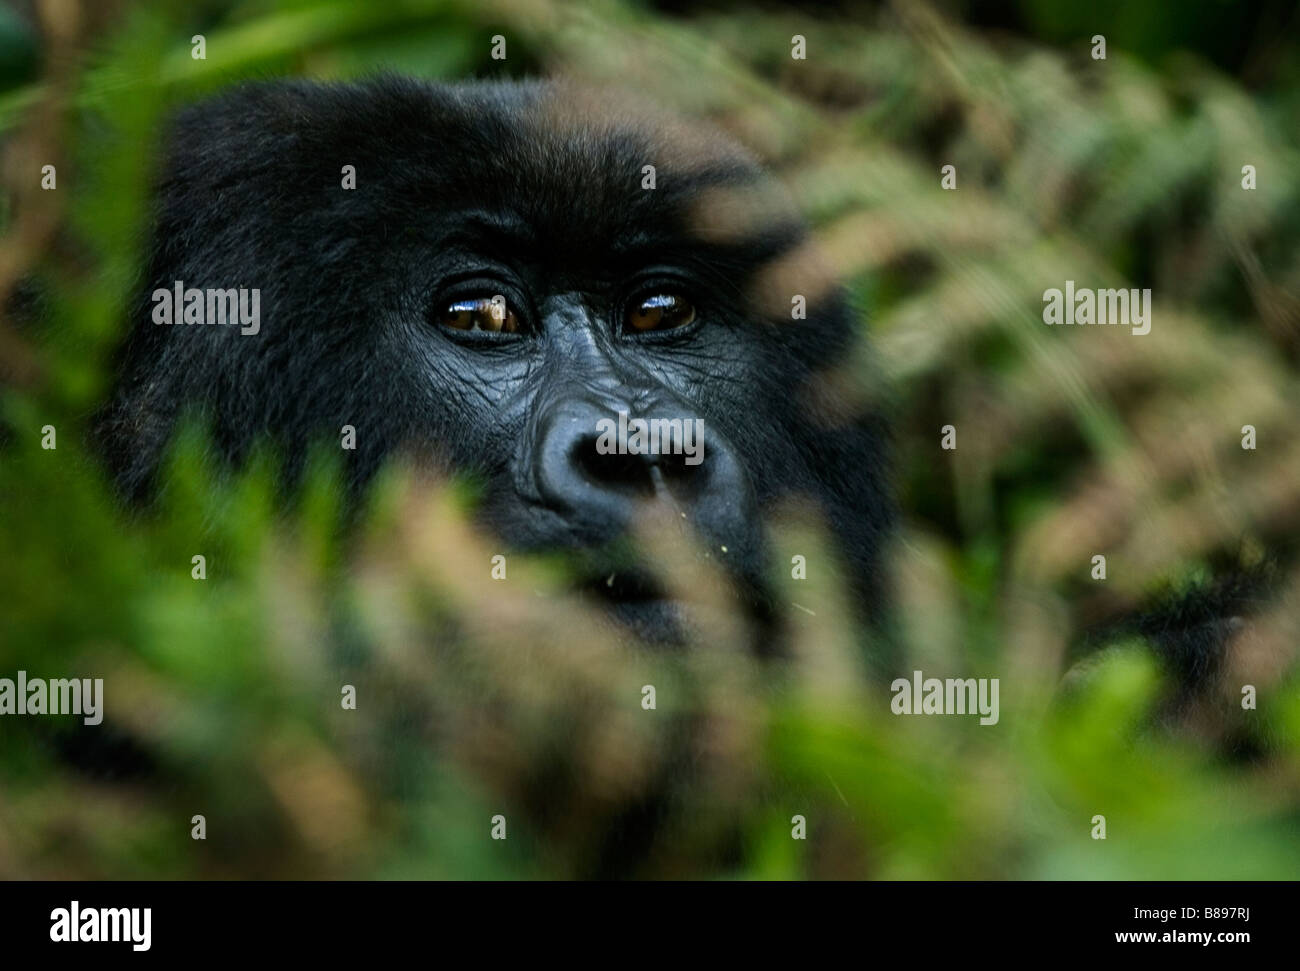 A mountain gorilla, gorilla gorilla beringei, looks through ferns and foliage in the Volcanoes National Park in - Stock Image